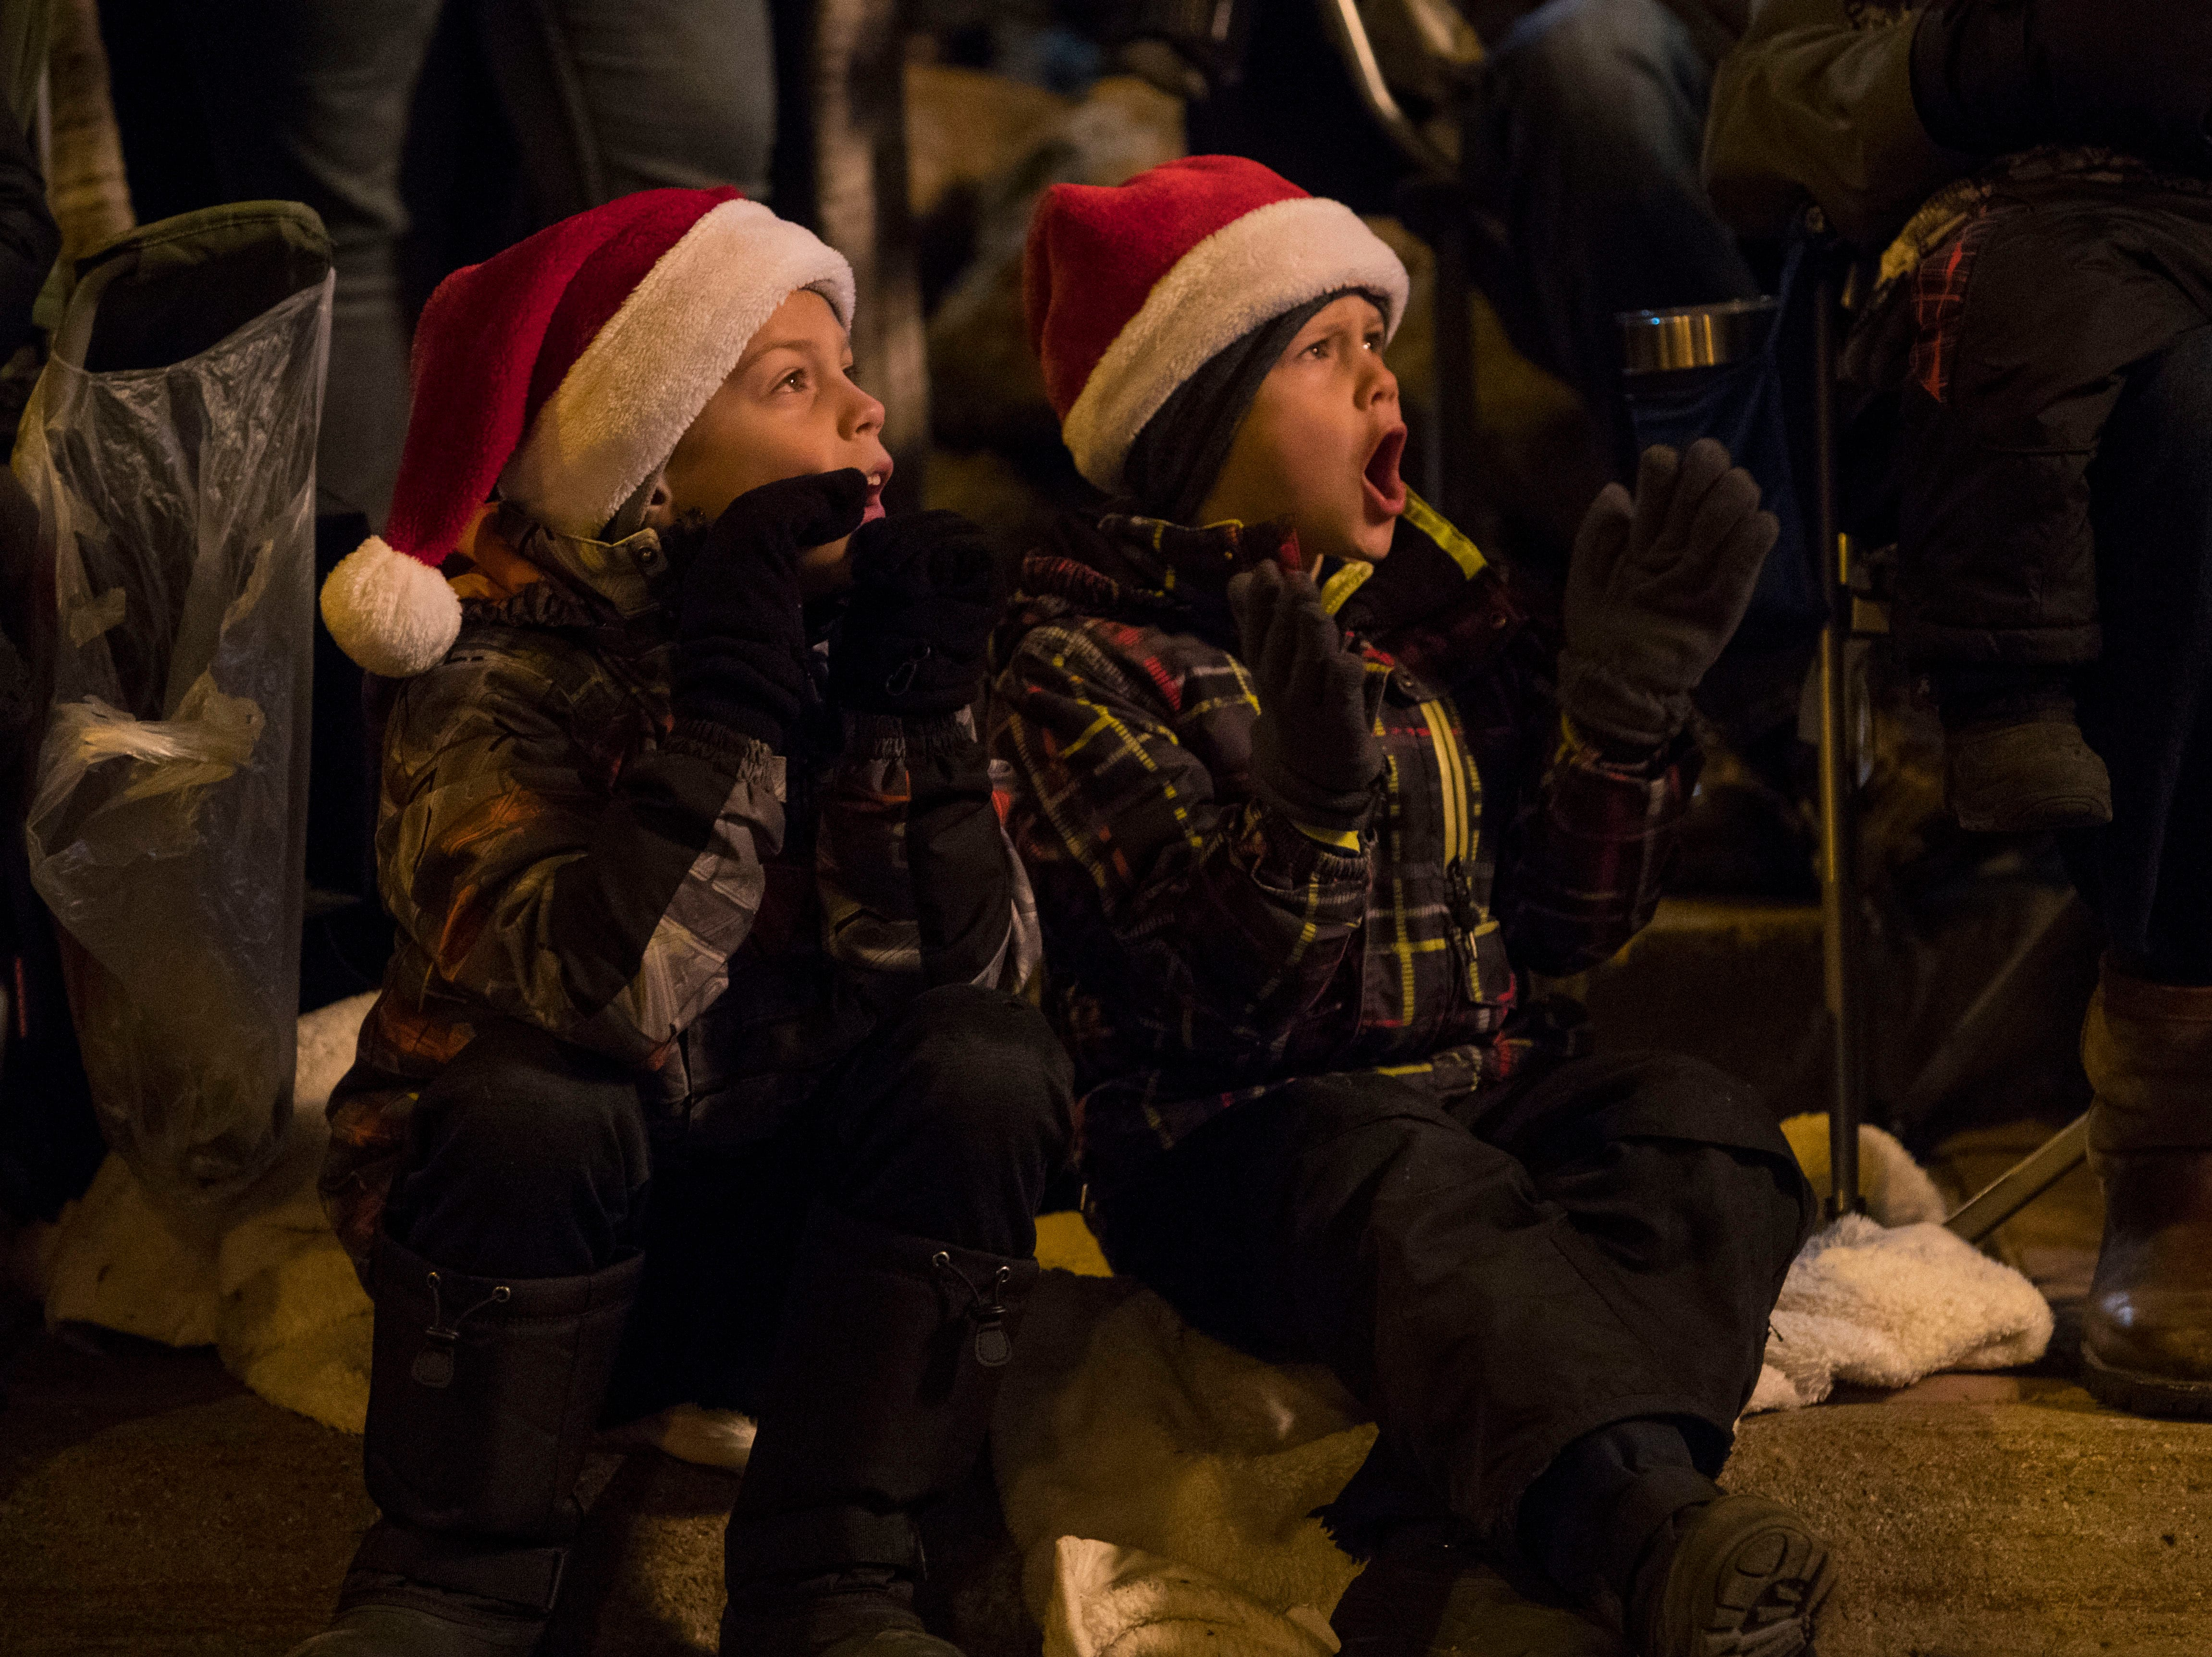 Kids react during the annual Parade of Lights in downtown Sioux Falls, S.D., Friday, Nov. 23, 2018.